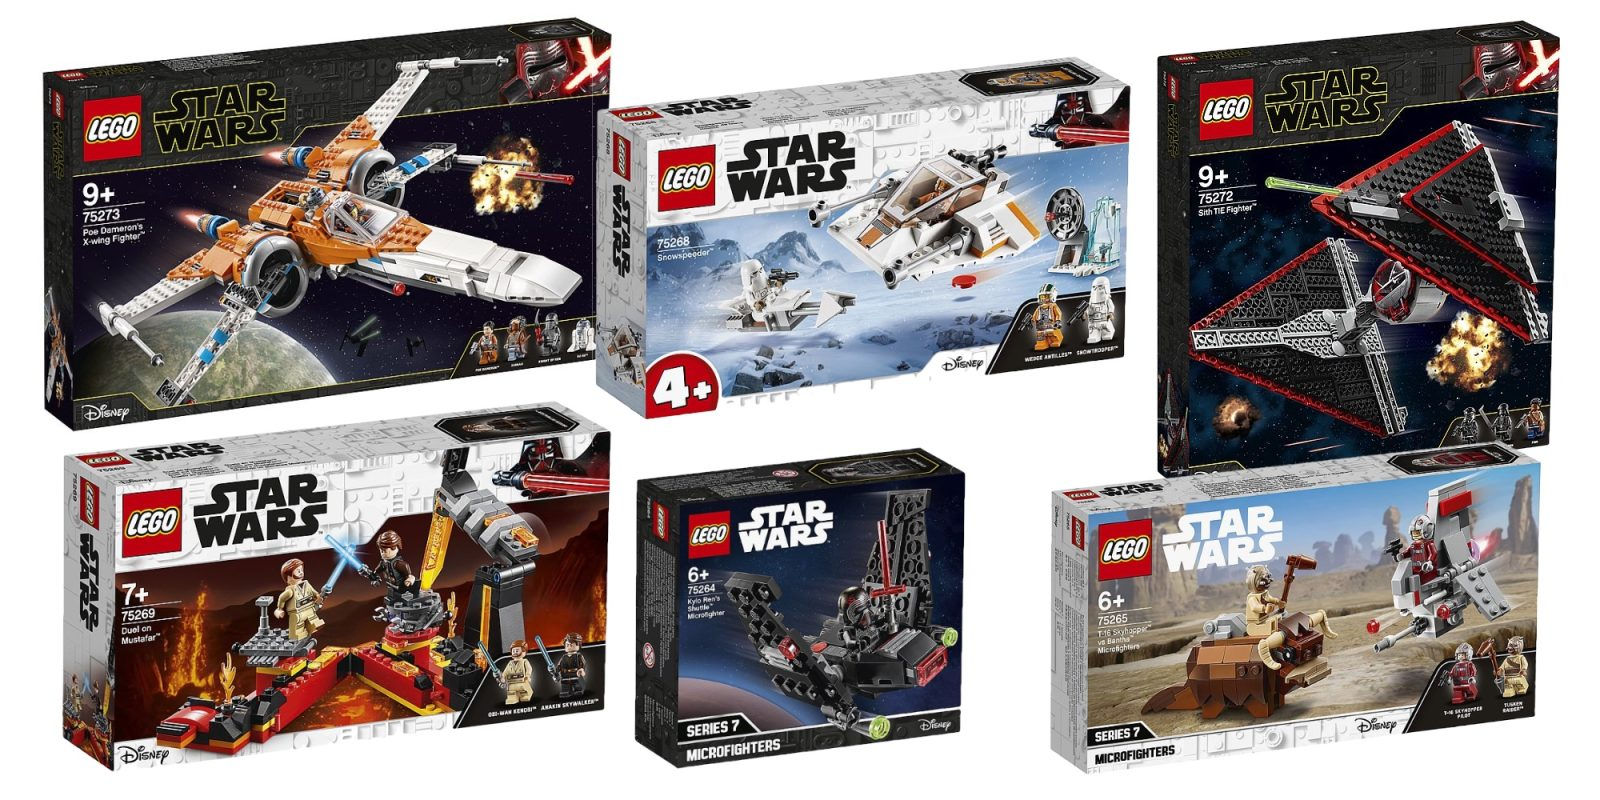 Lego Games 2020.Lego Star Wars 2020 Sets Announced Alongside City And More